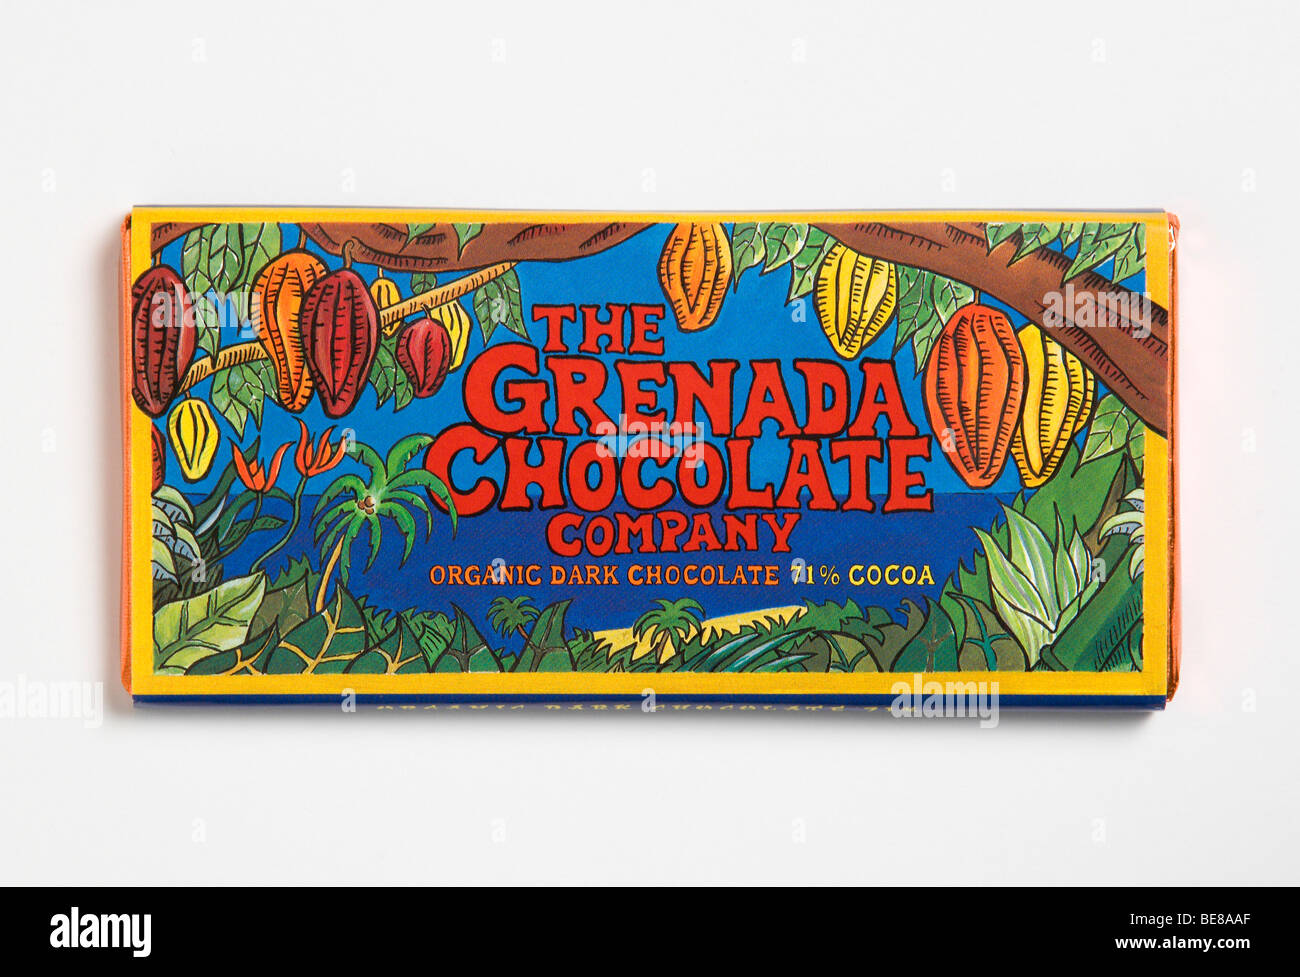 WEST INDIES Caribbean Grenada St Patrick Organic chocolate bar ...